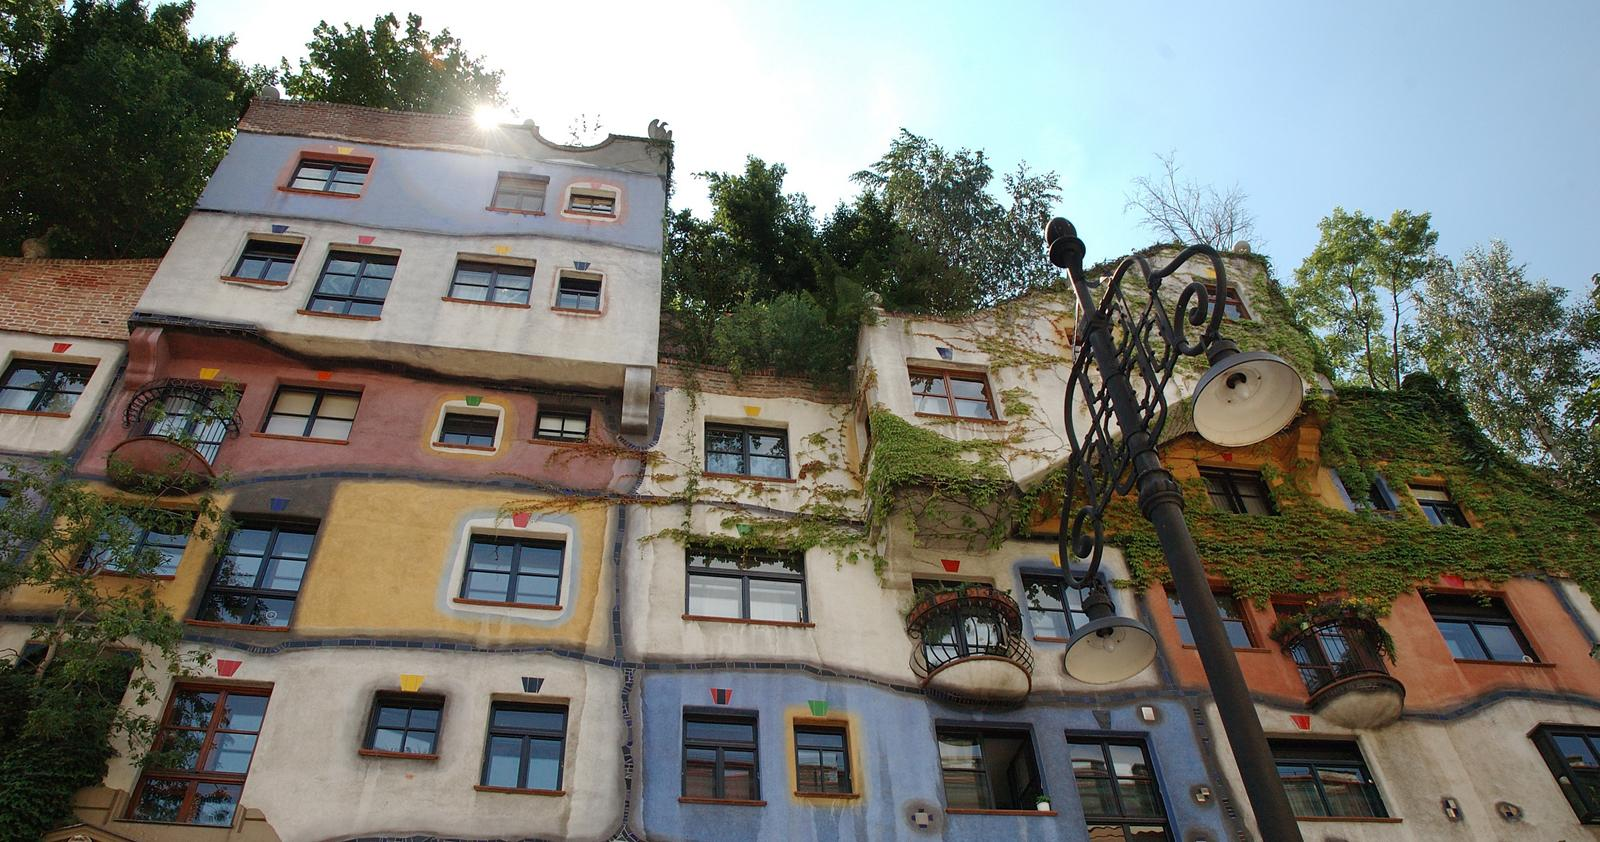 Hundertwasserhaus, Things to do in Vienna